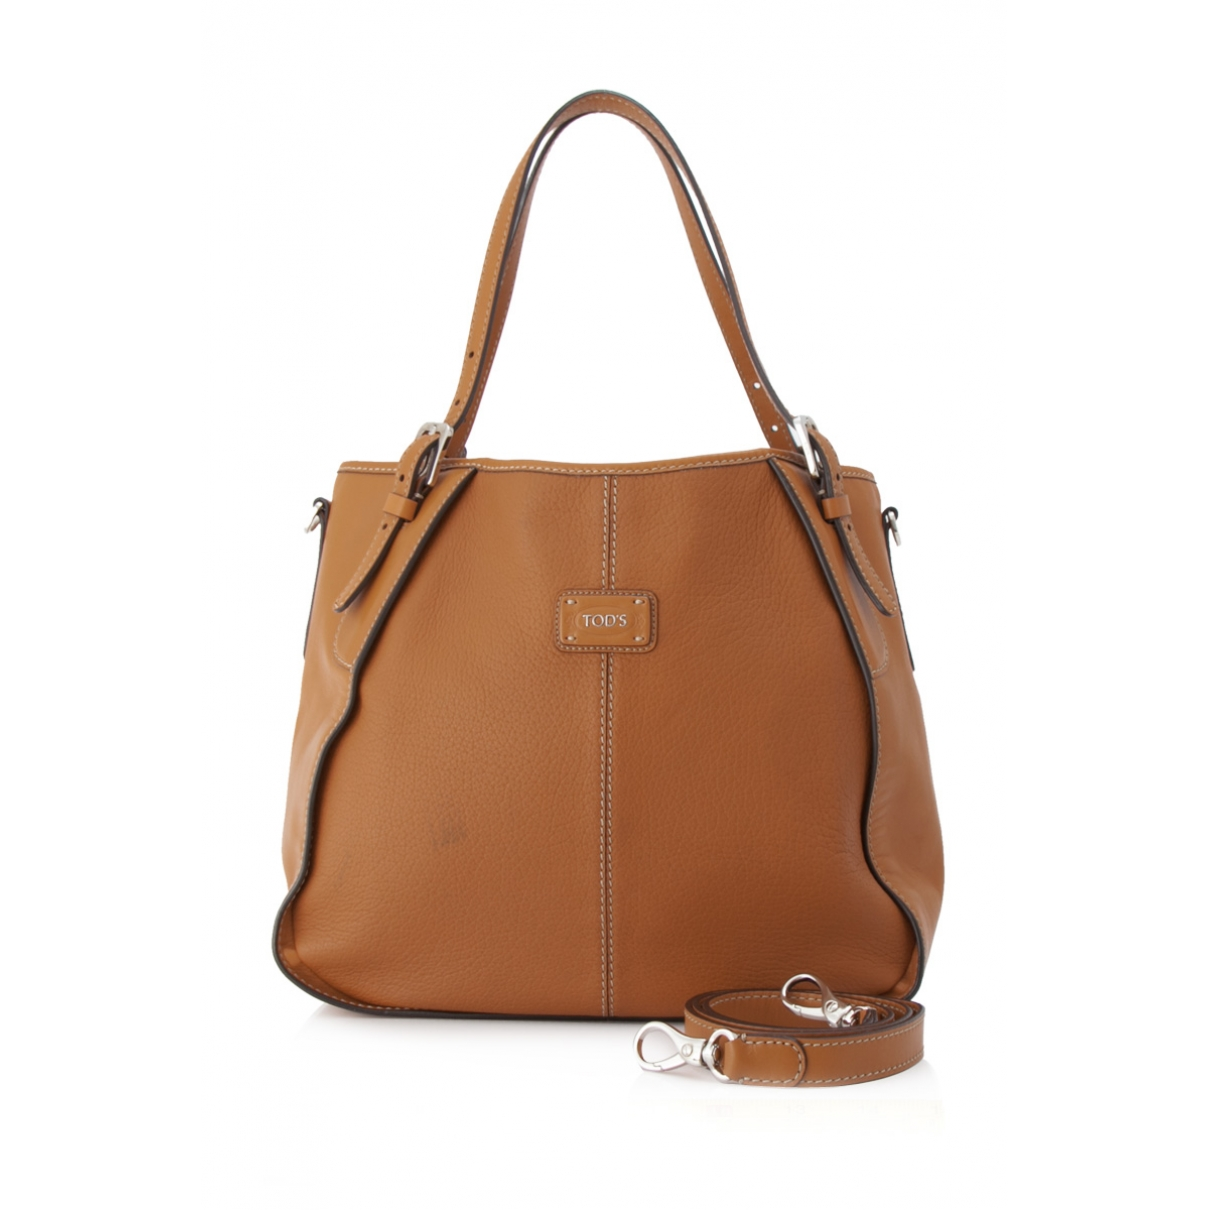 Tod's \N Brown Leather handbag for Women \N